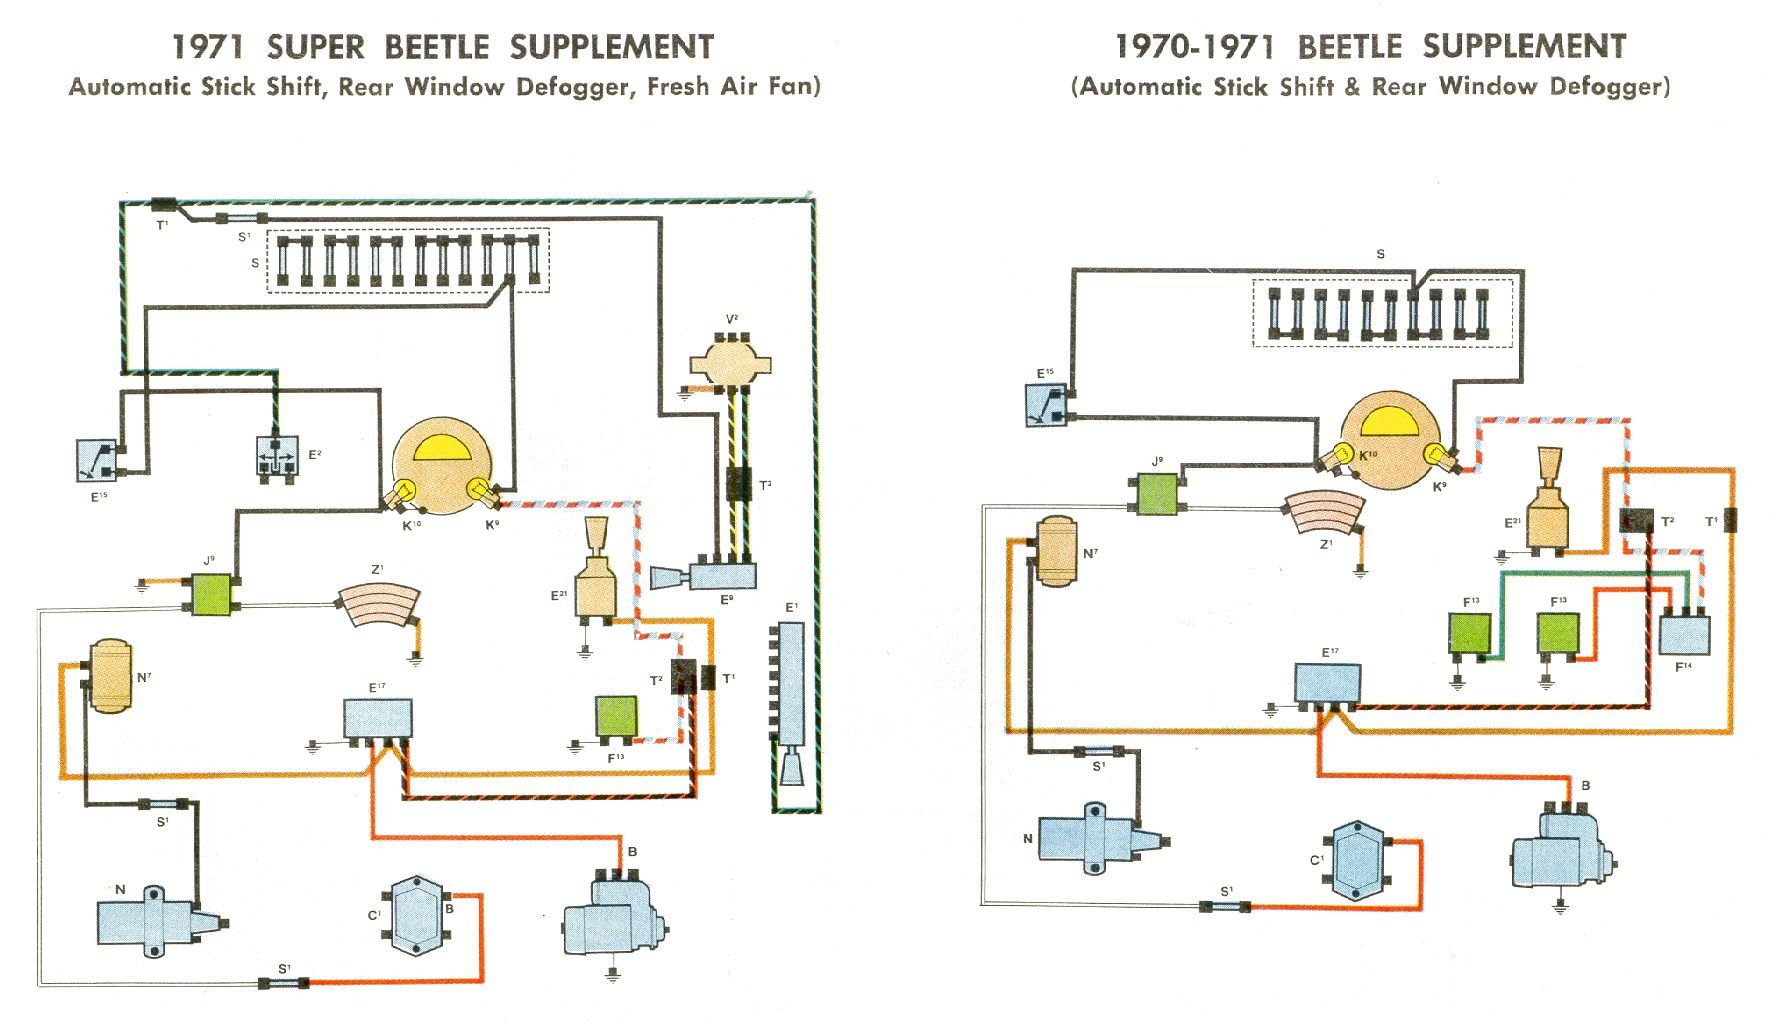 bug_7071_supplement 1969 71 beetle wiring diagram thegoldenbug com vw engine wiring diagram at nearapp.co